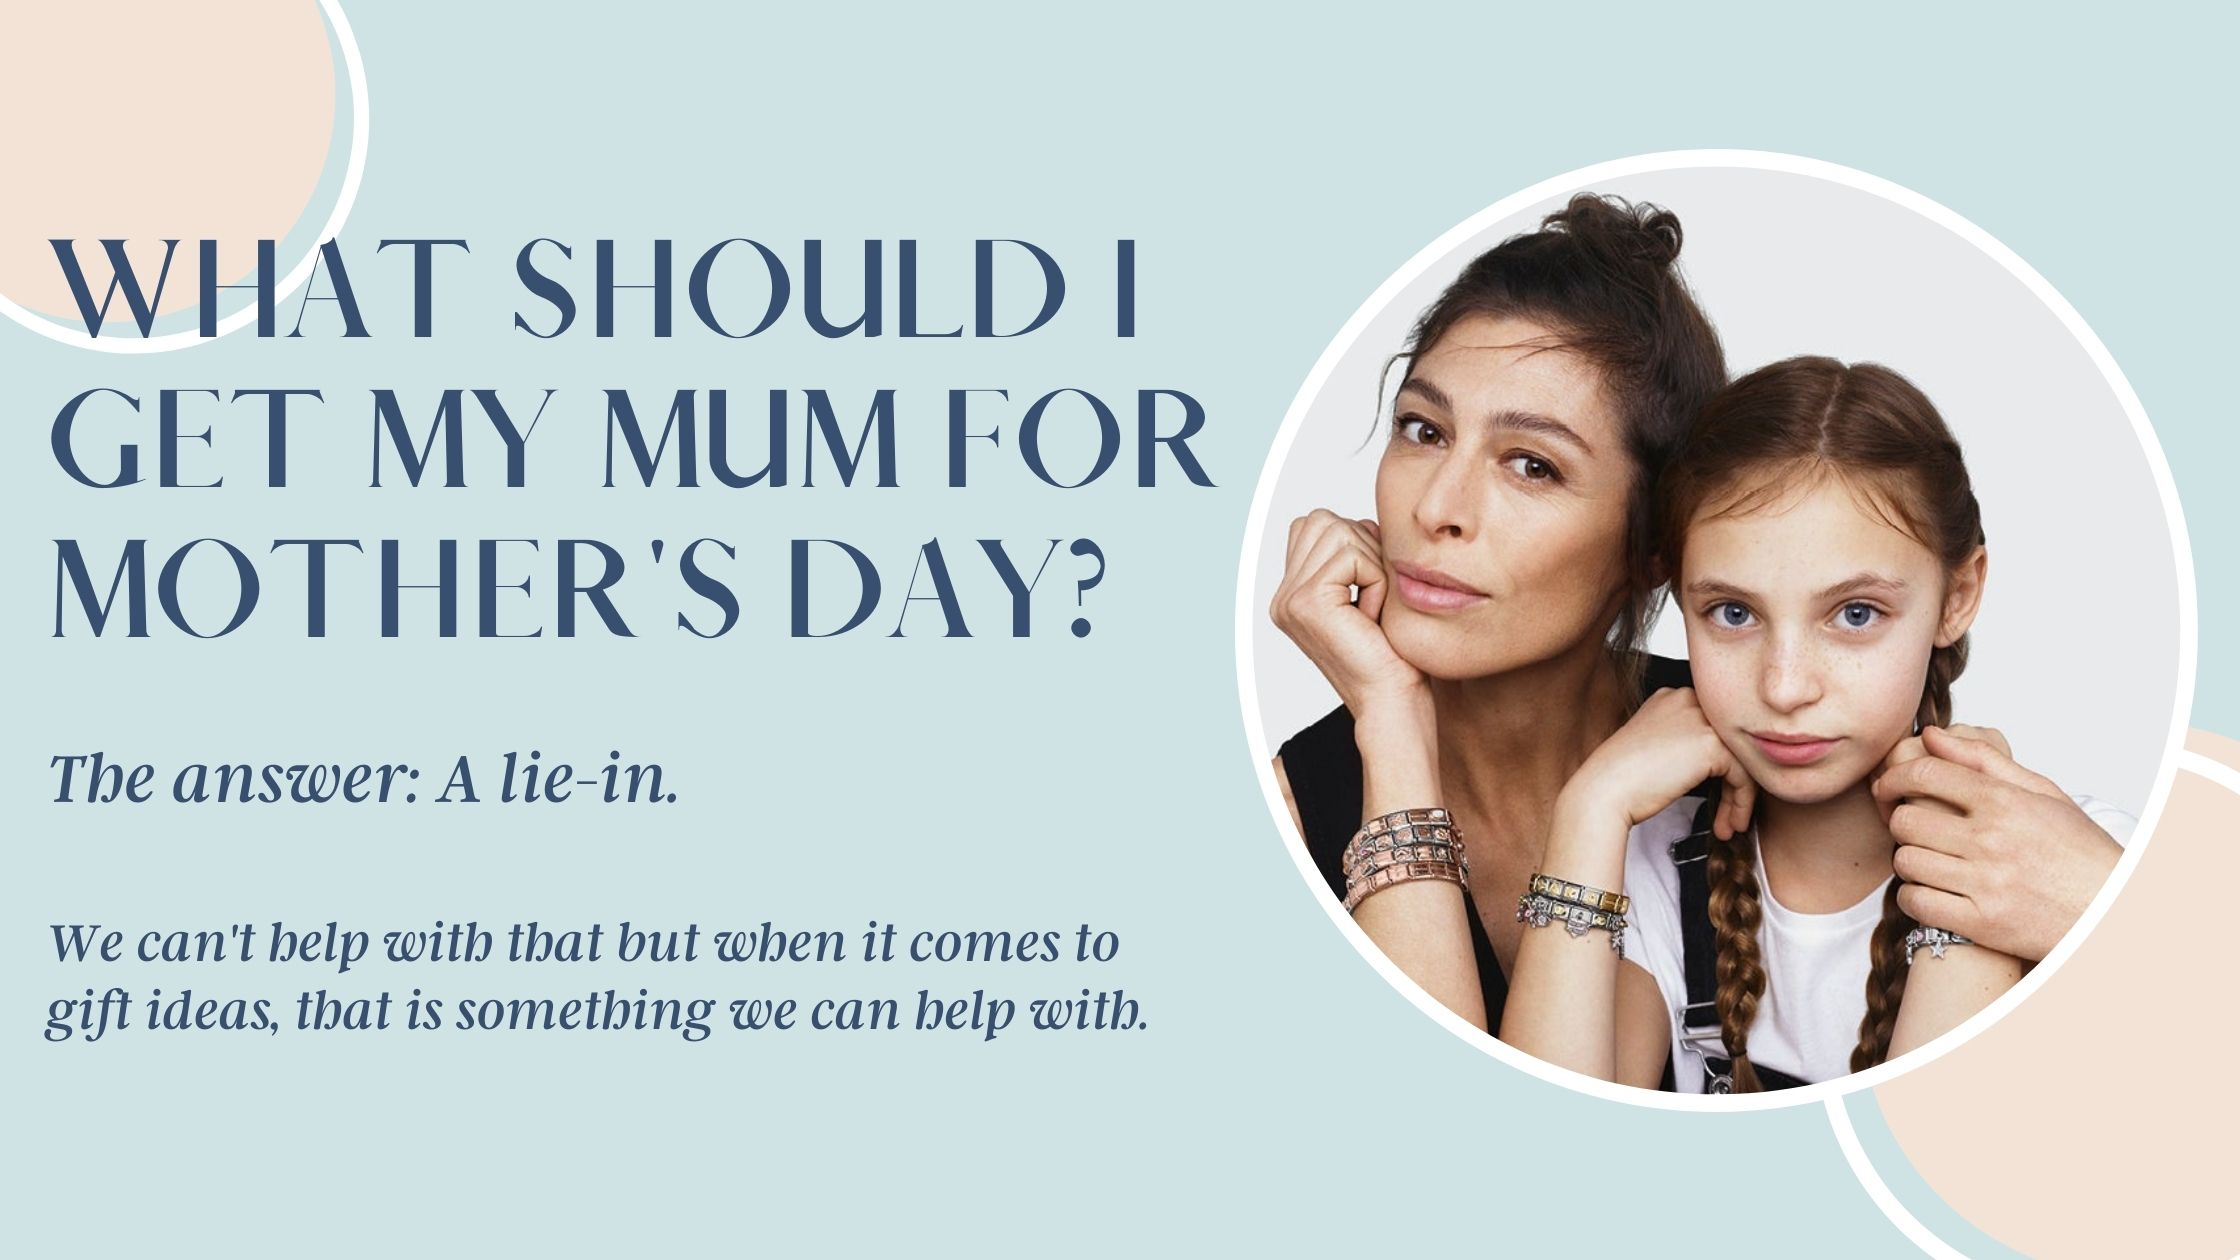 Mother's Day Gift Ideas - The best gift: A lie-in. At Grace & Co that is not something we can help with, but when it comes to sentimental gifts that your Mum will cherish, that's where we can help.